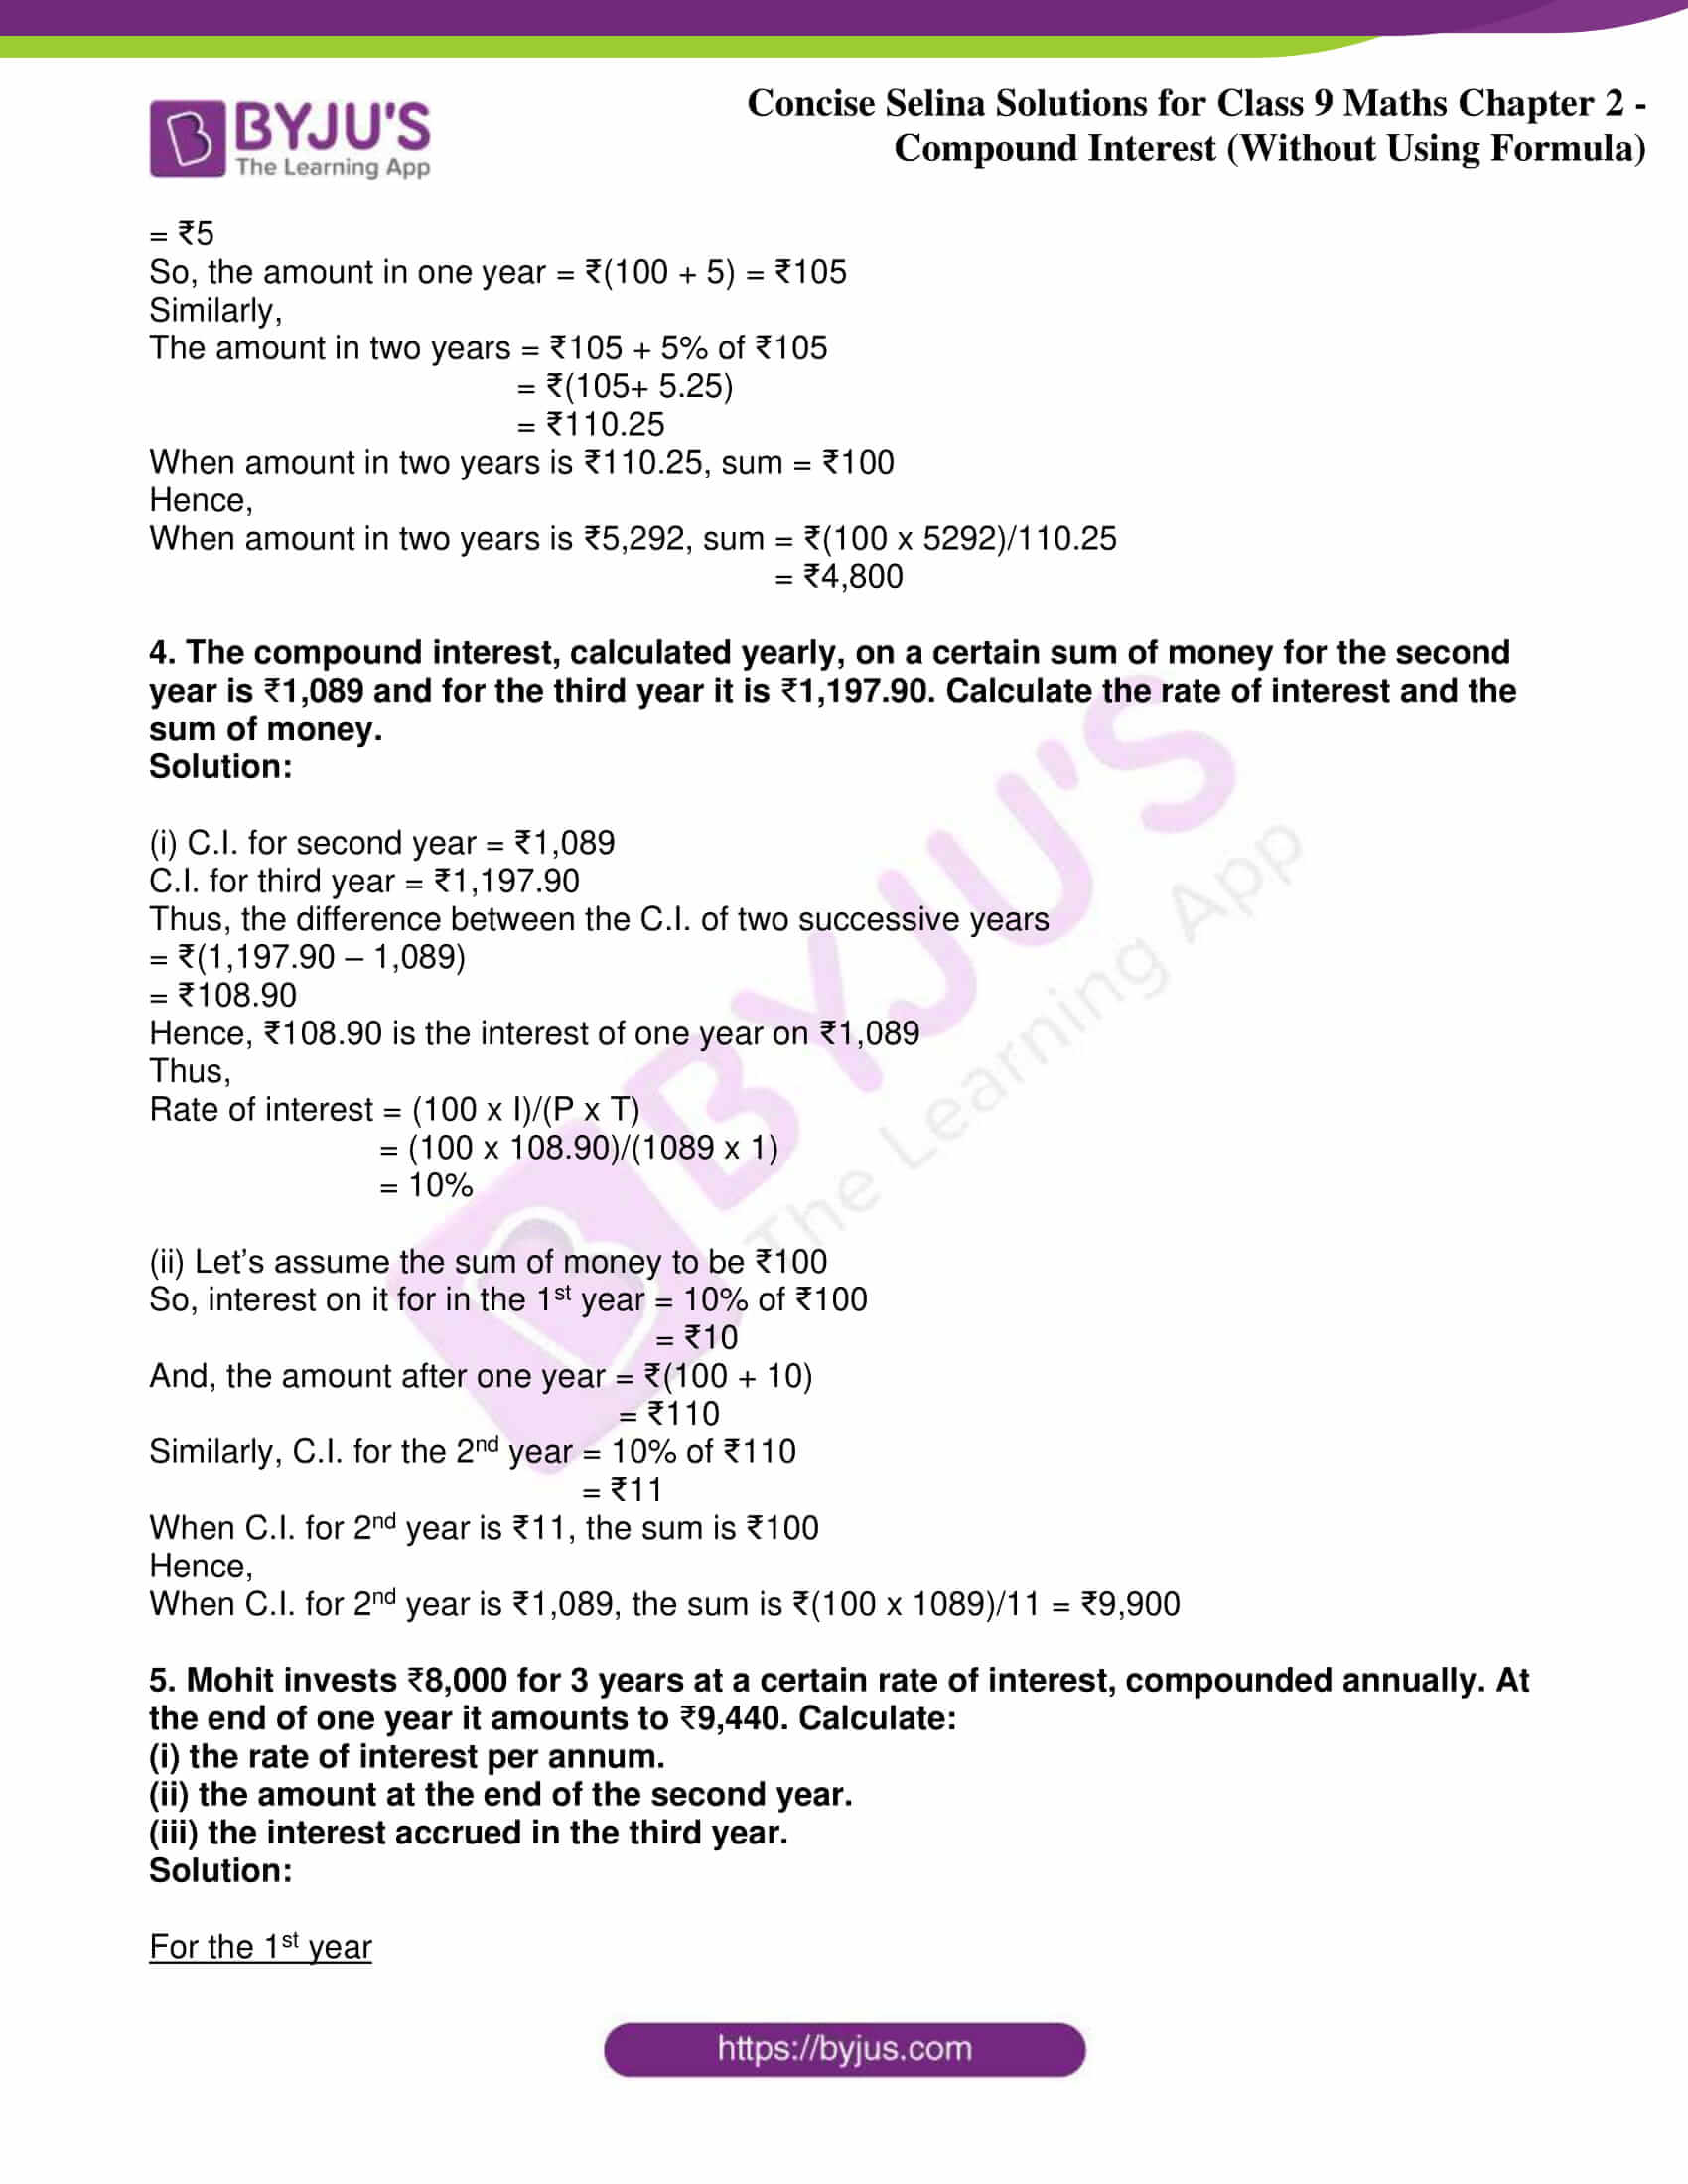 icse class 9 maths may10 selina solutions chapter 2 compound interest without using formula 16